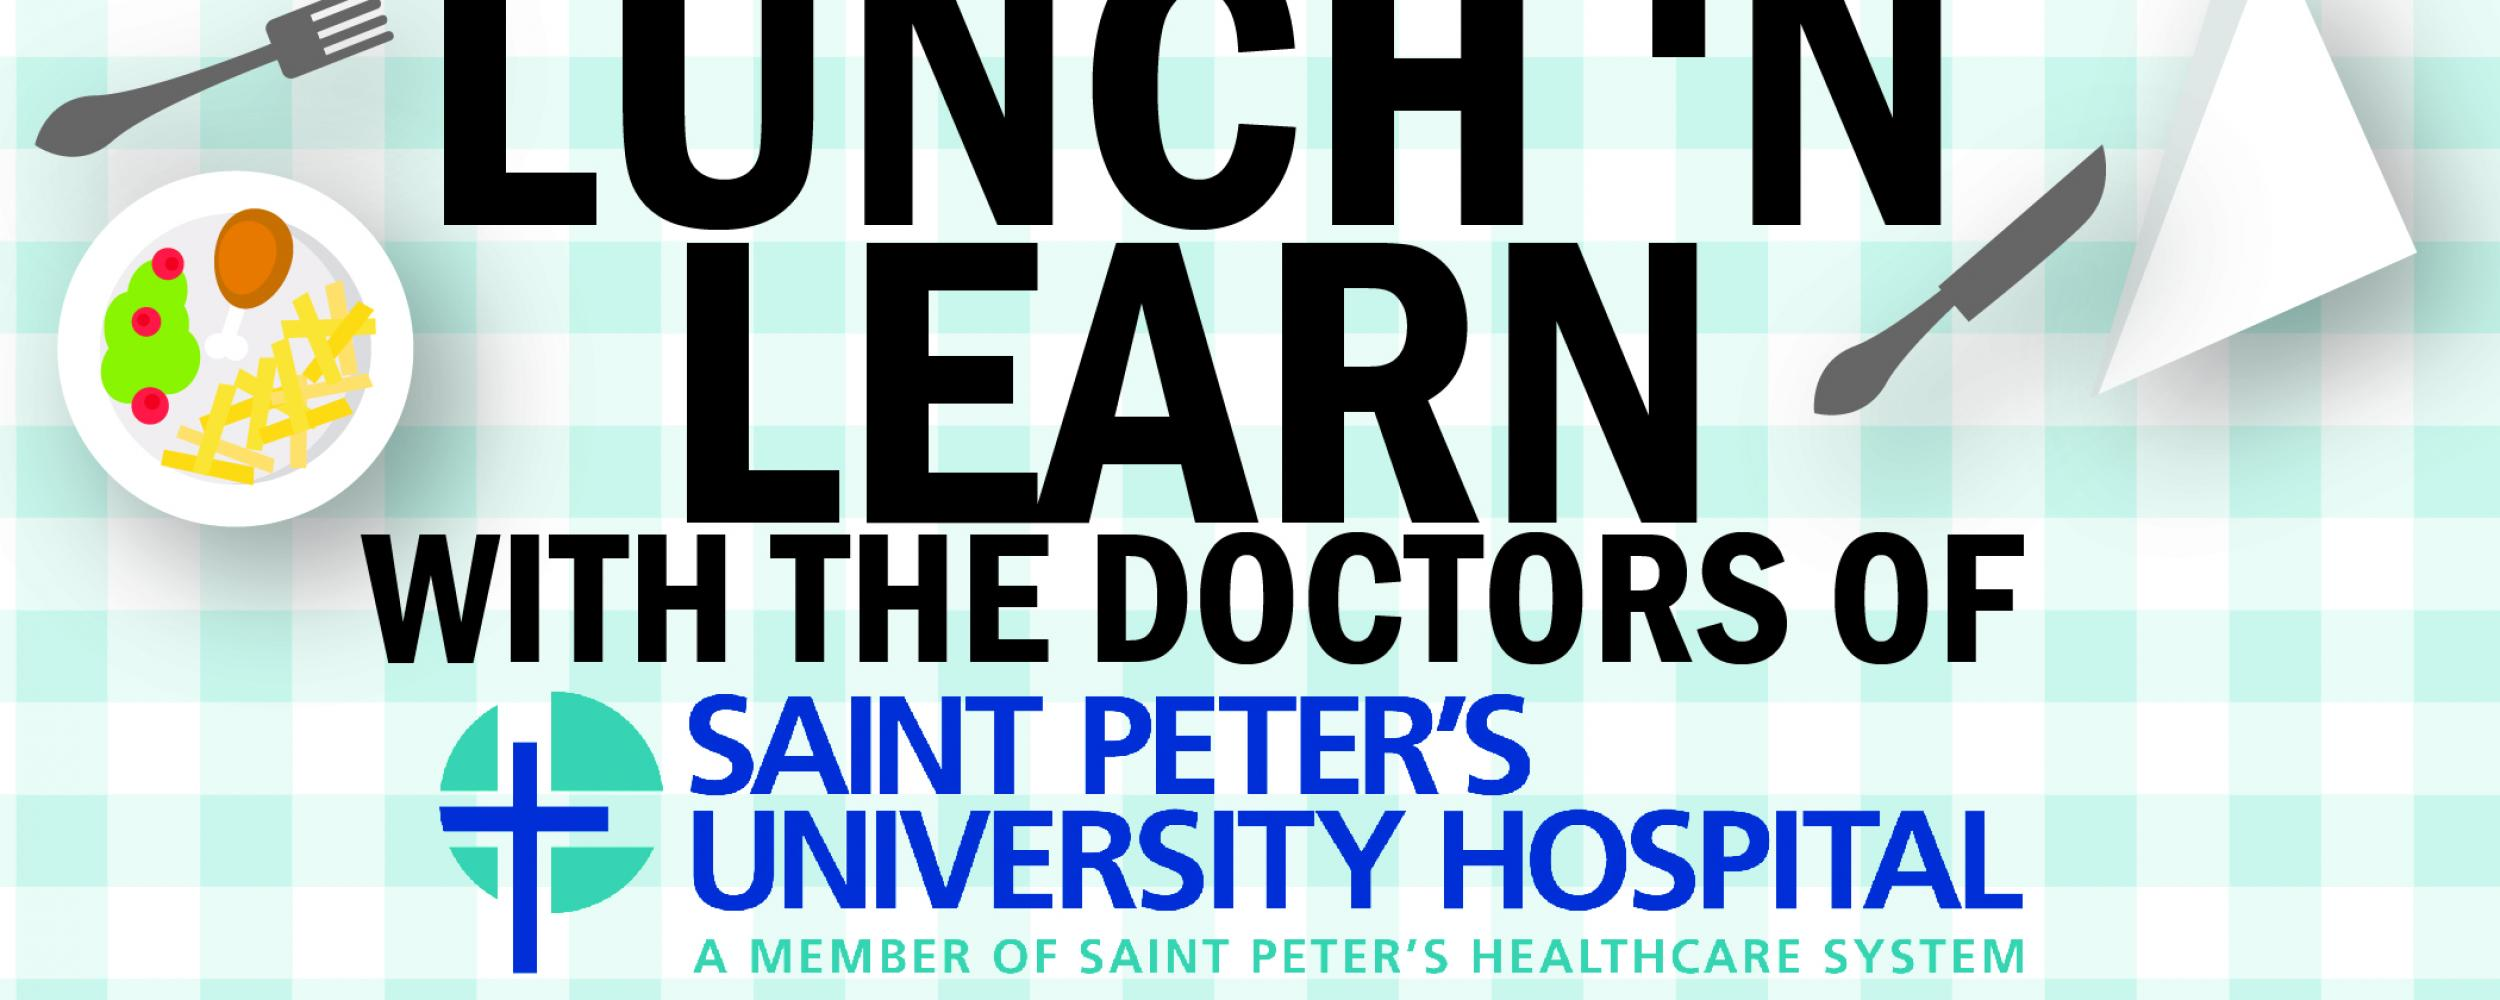 lunch n learn with the doctors